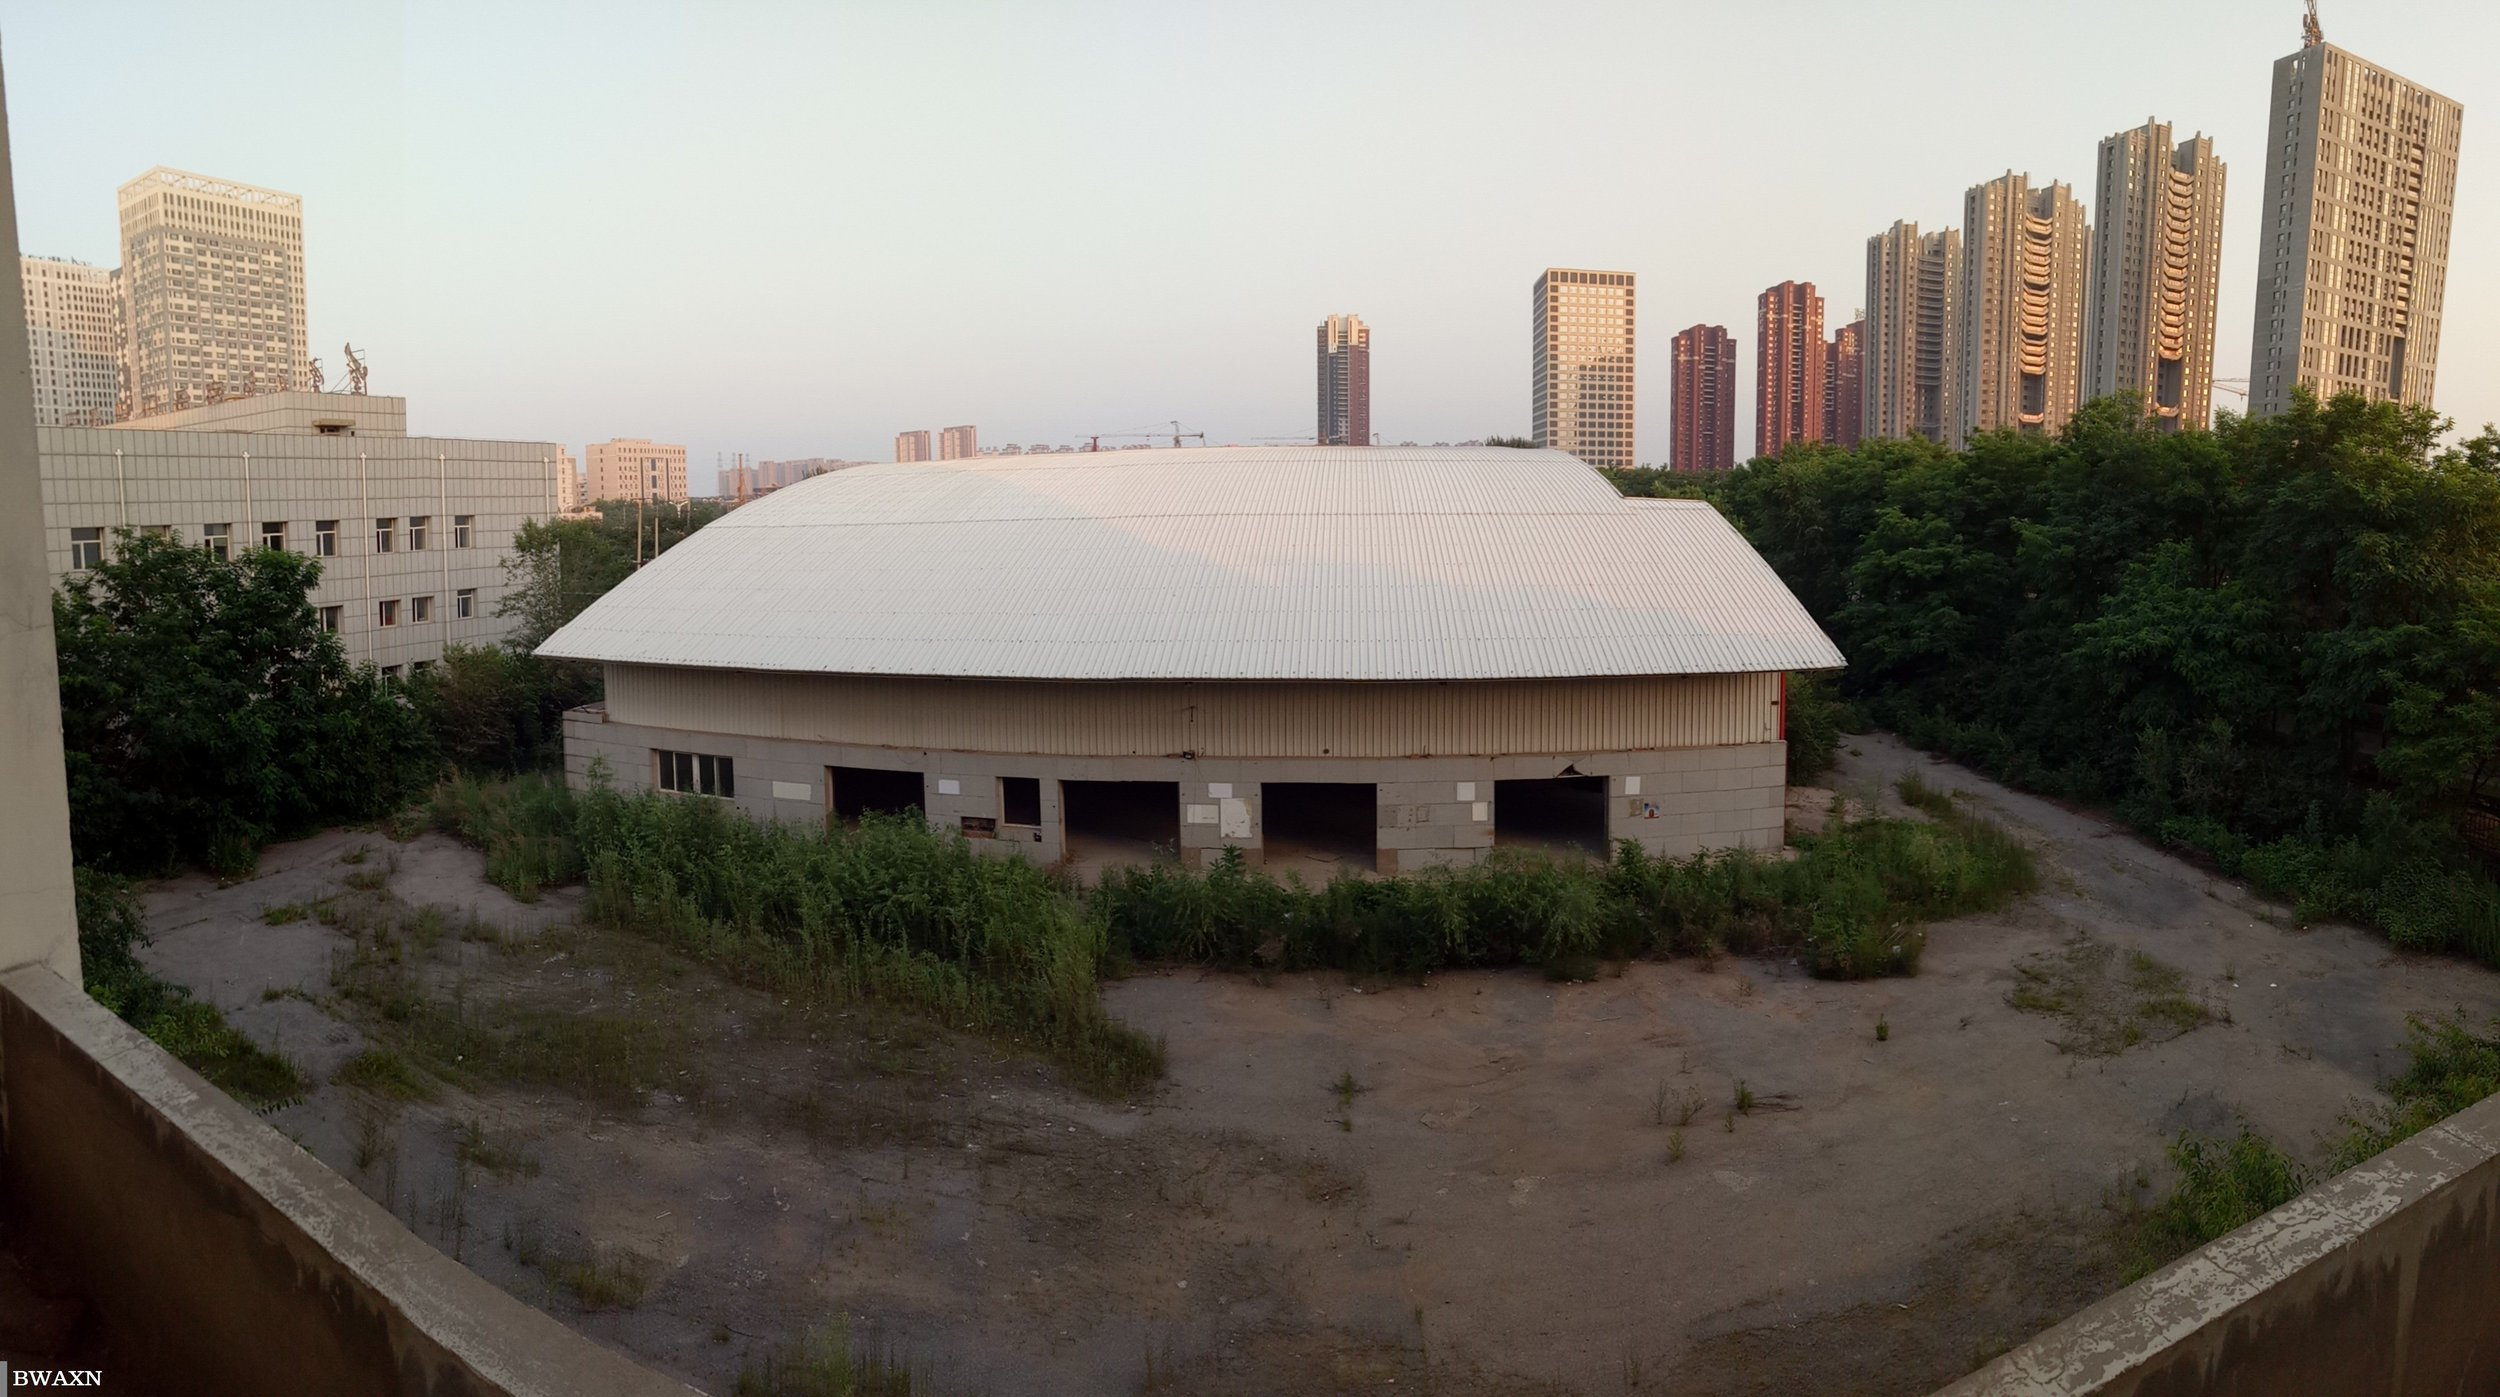 The warehouse from above.